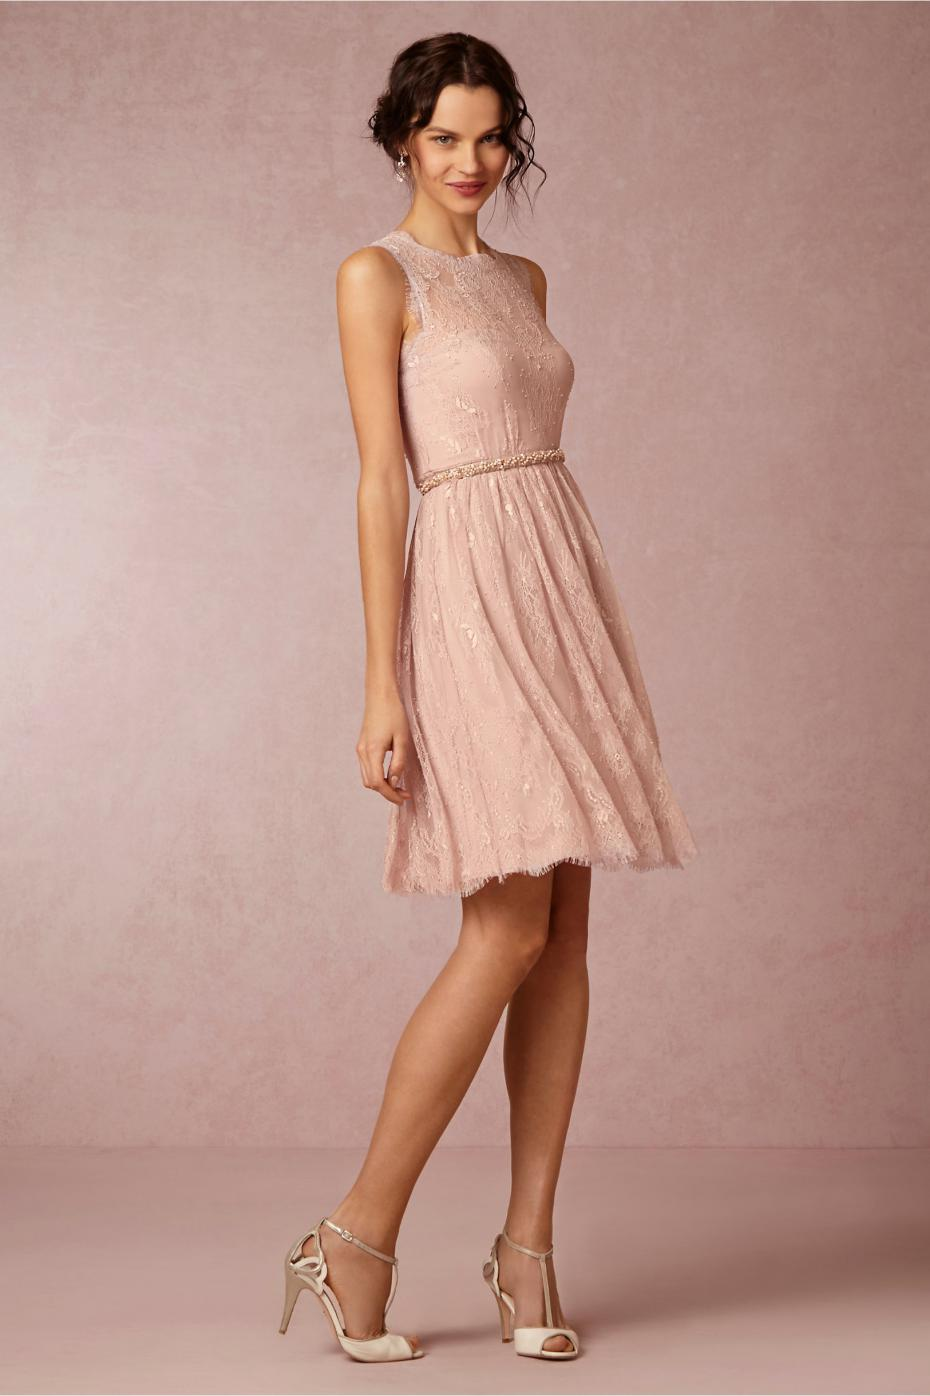 Light Pink Lace Bridesmaid Dresses - Missy Dress